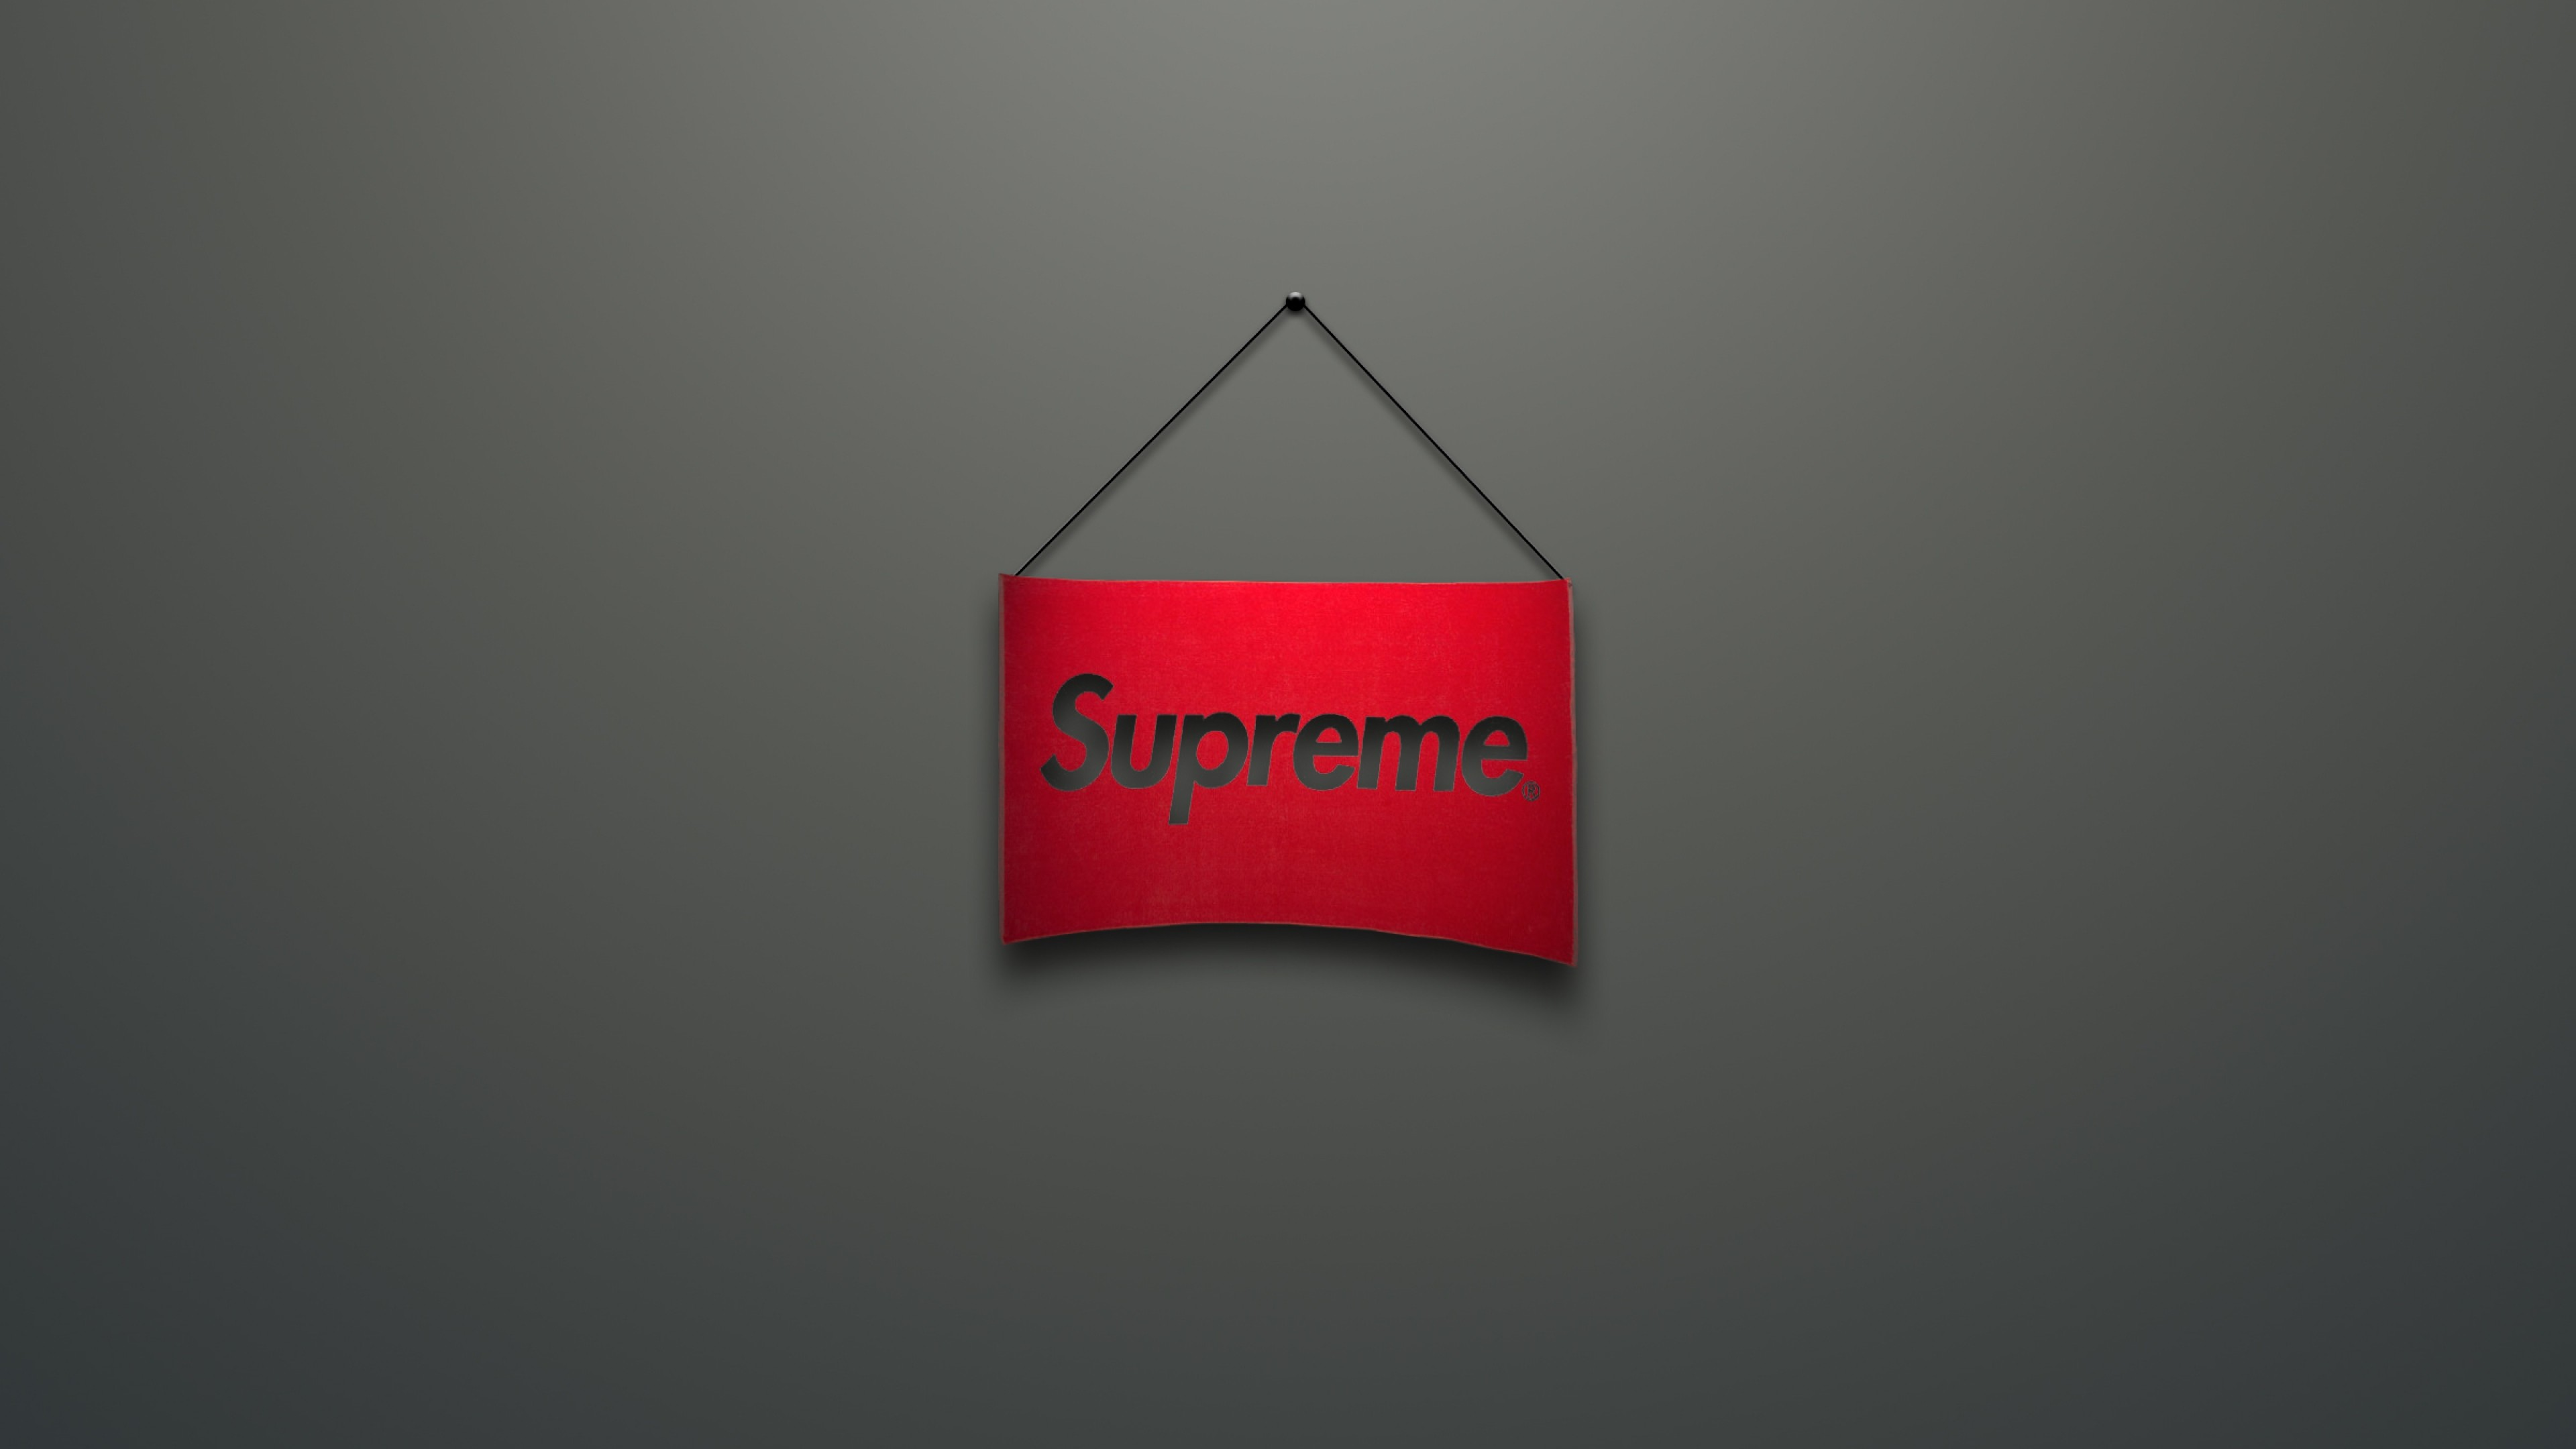 Supreme Wallpapers Free Download